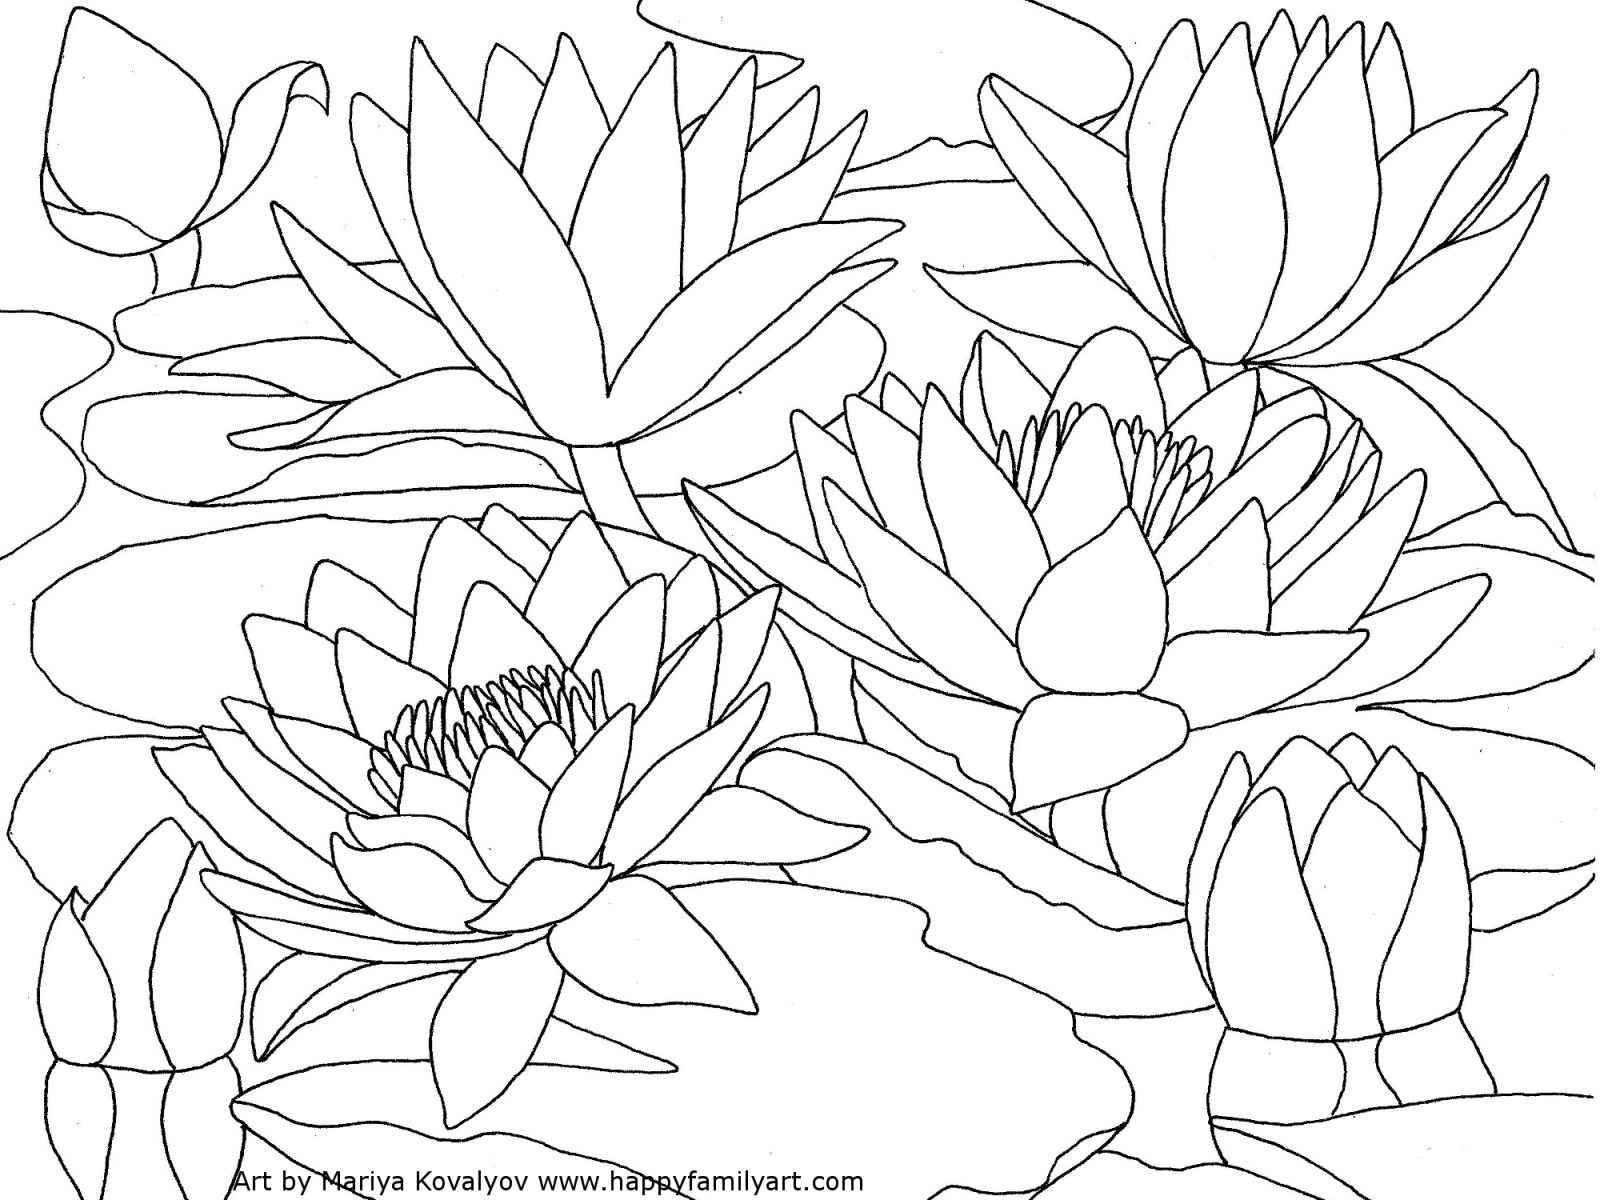 1600x1200 Lilium Flower Coloring Pages For Kids Freecolorngpages.co